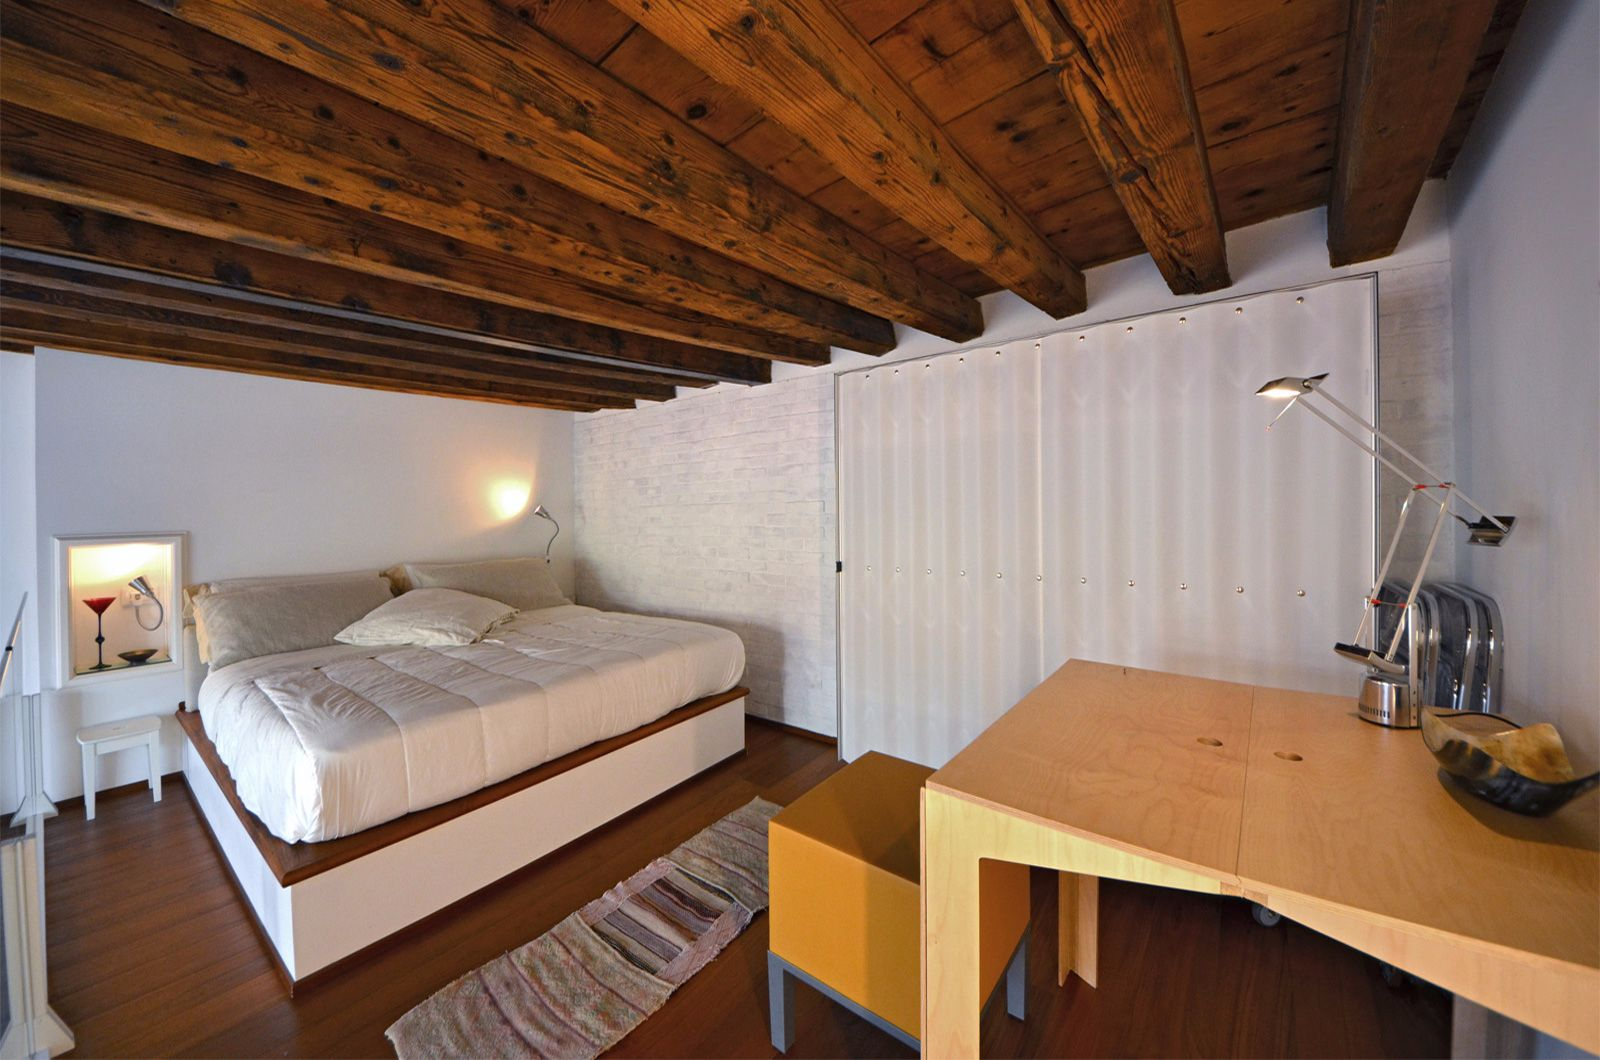 spacious bedroom in the gallery, the height of the wooden beams is 185 cm